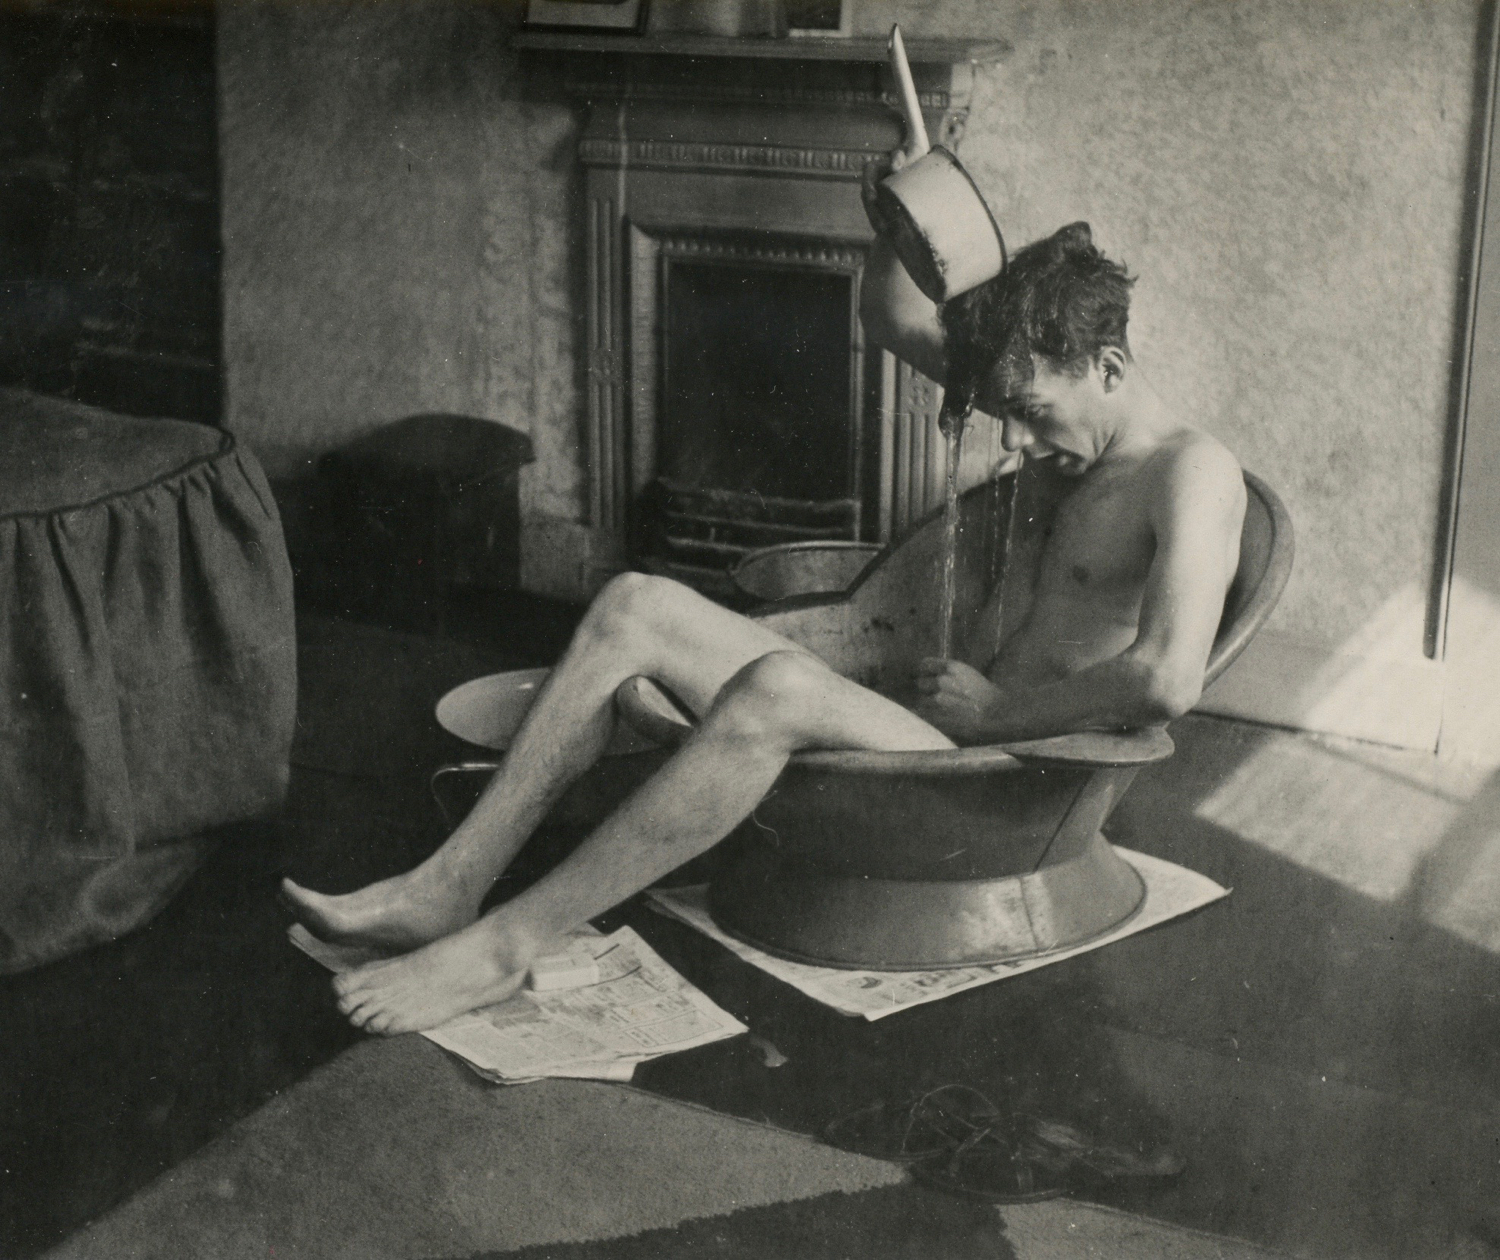 Sylvester having a bath in a New Compton Street tenement